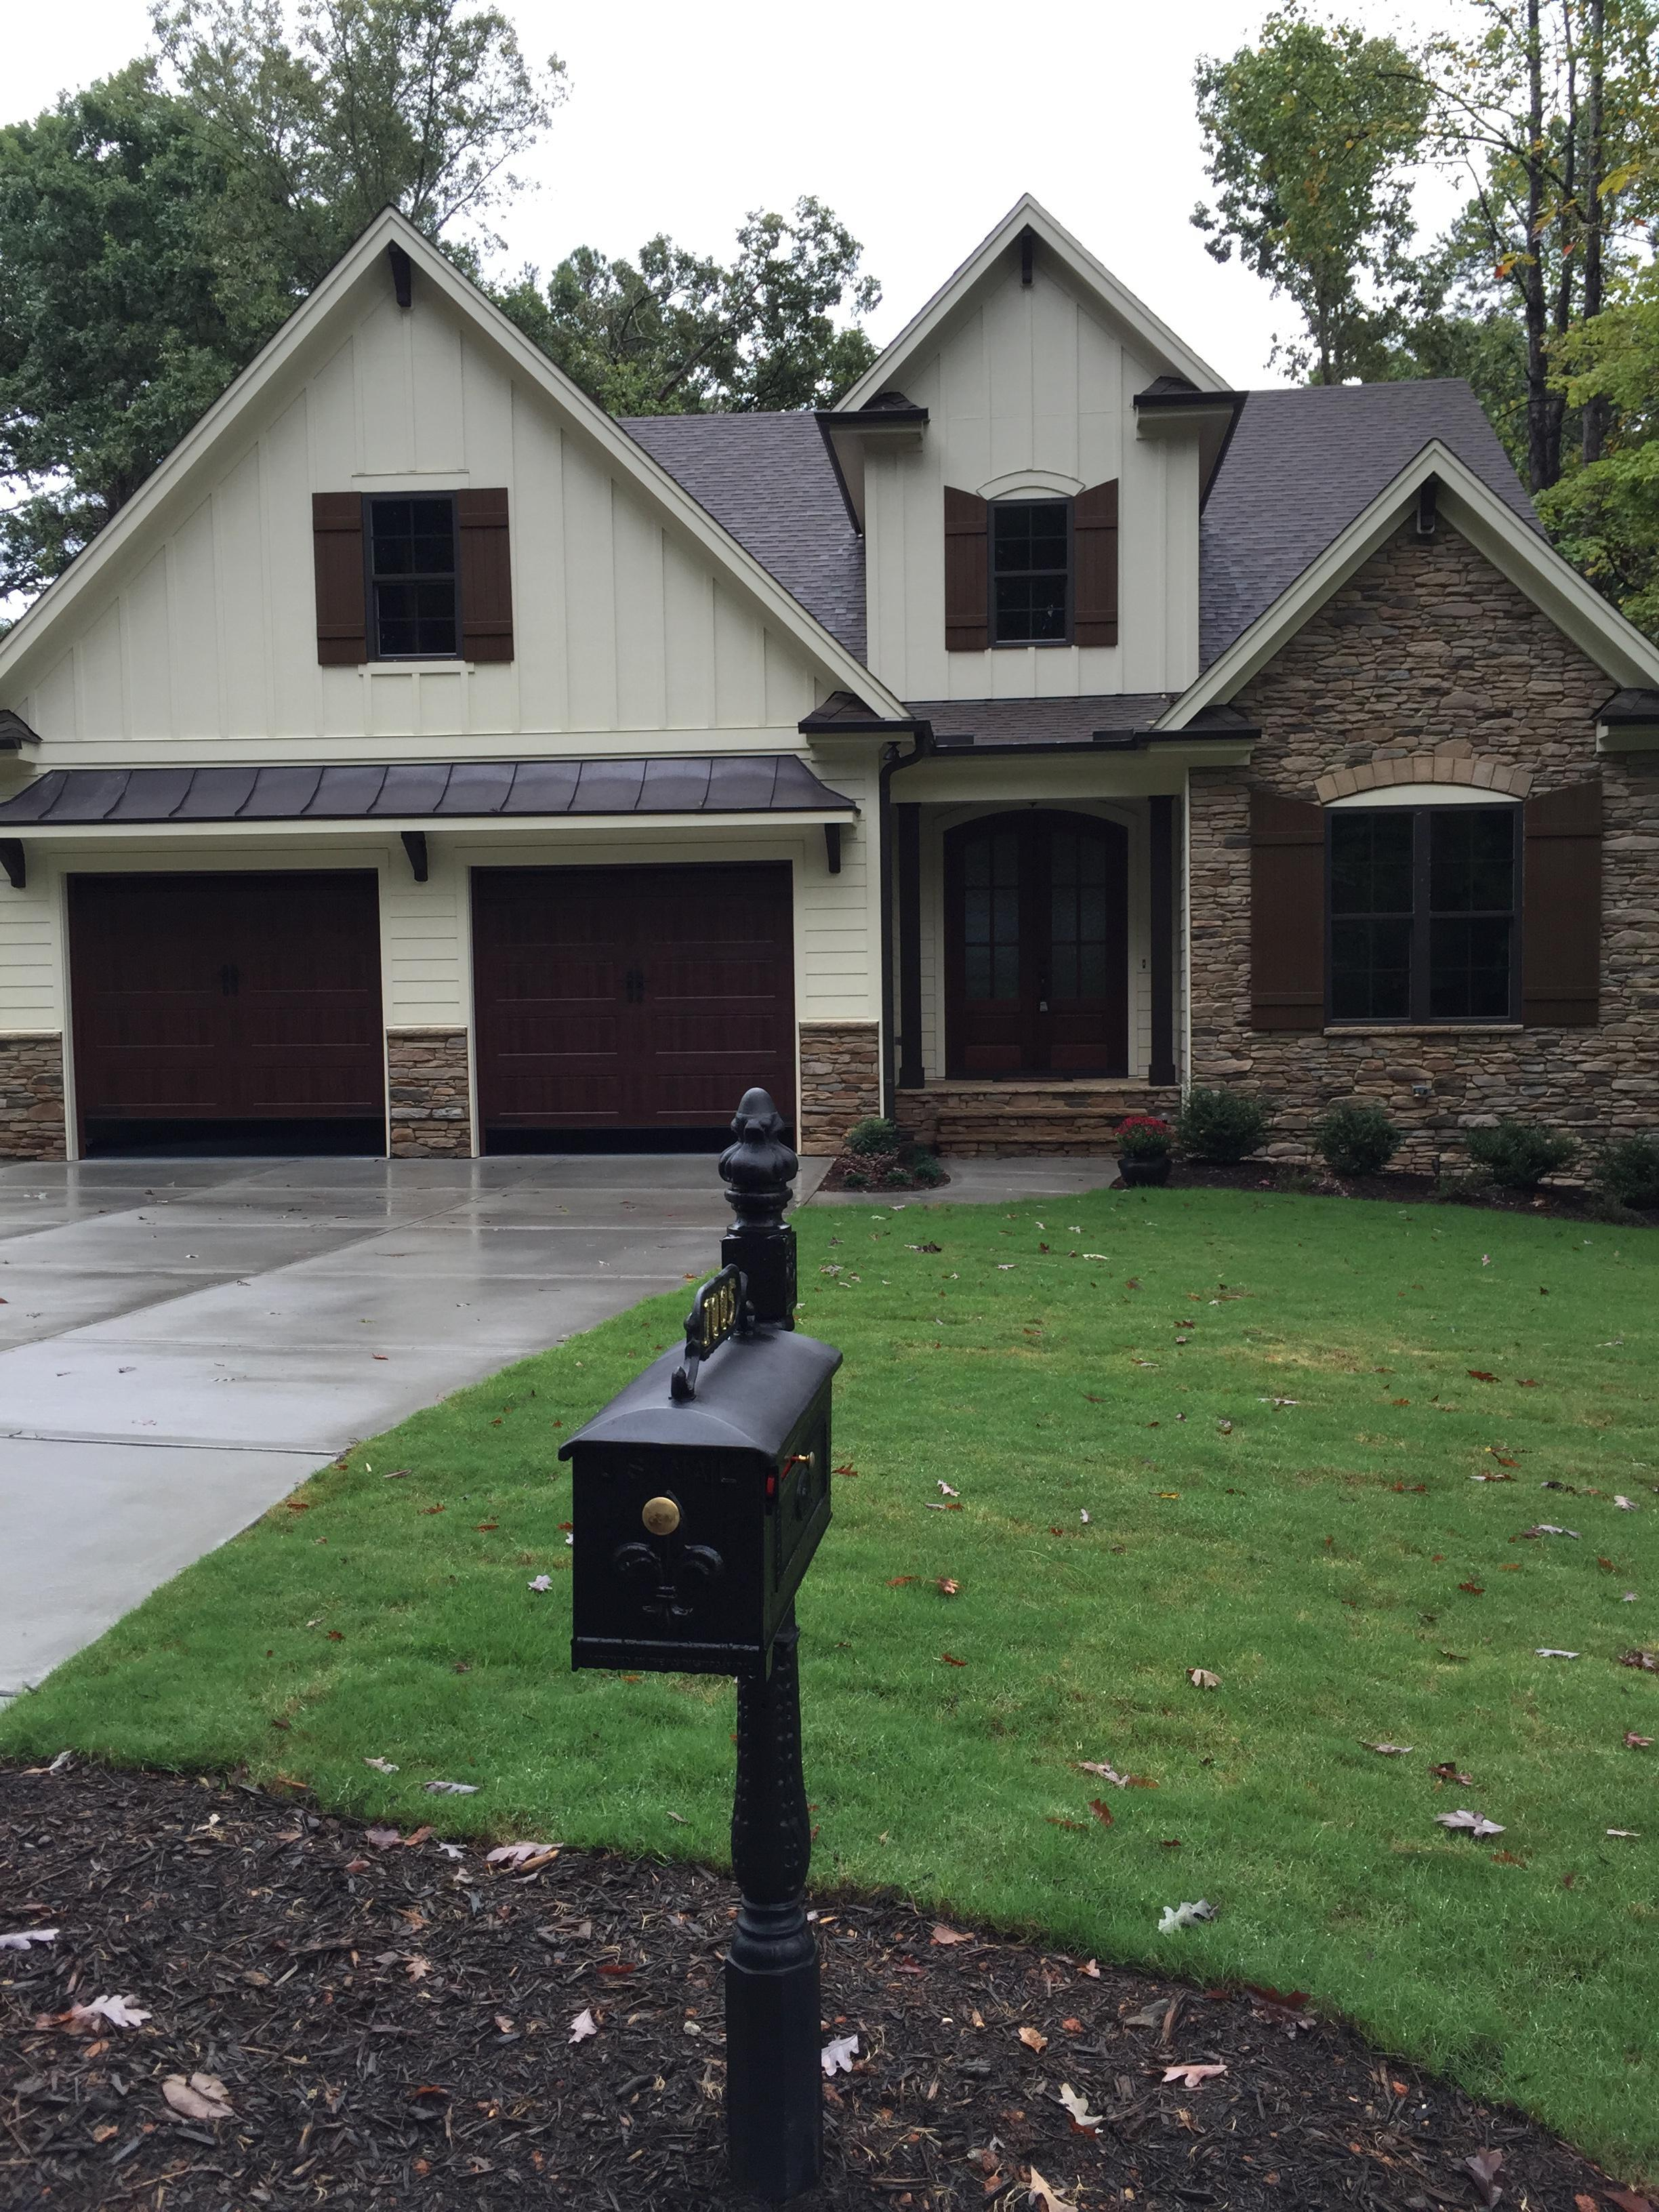 Grayson homes llc coupons near me in 8coupons for Local home builders near me